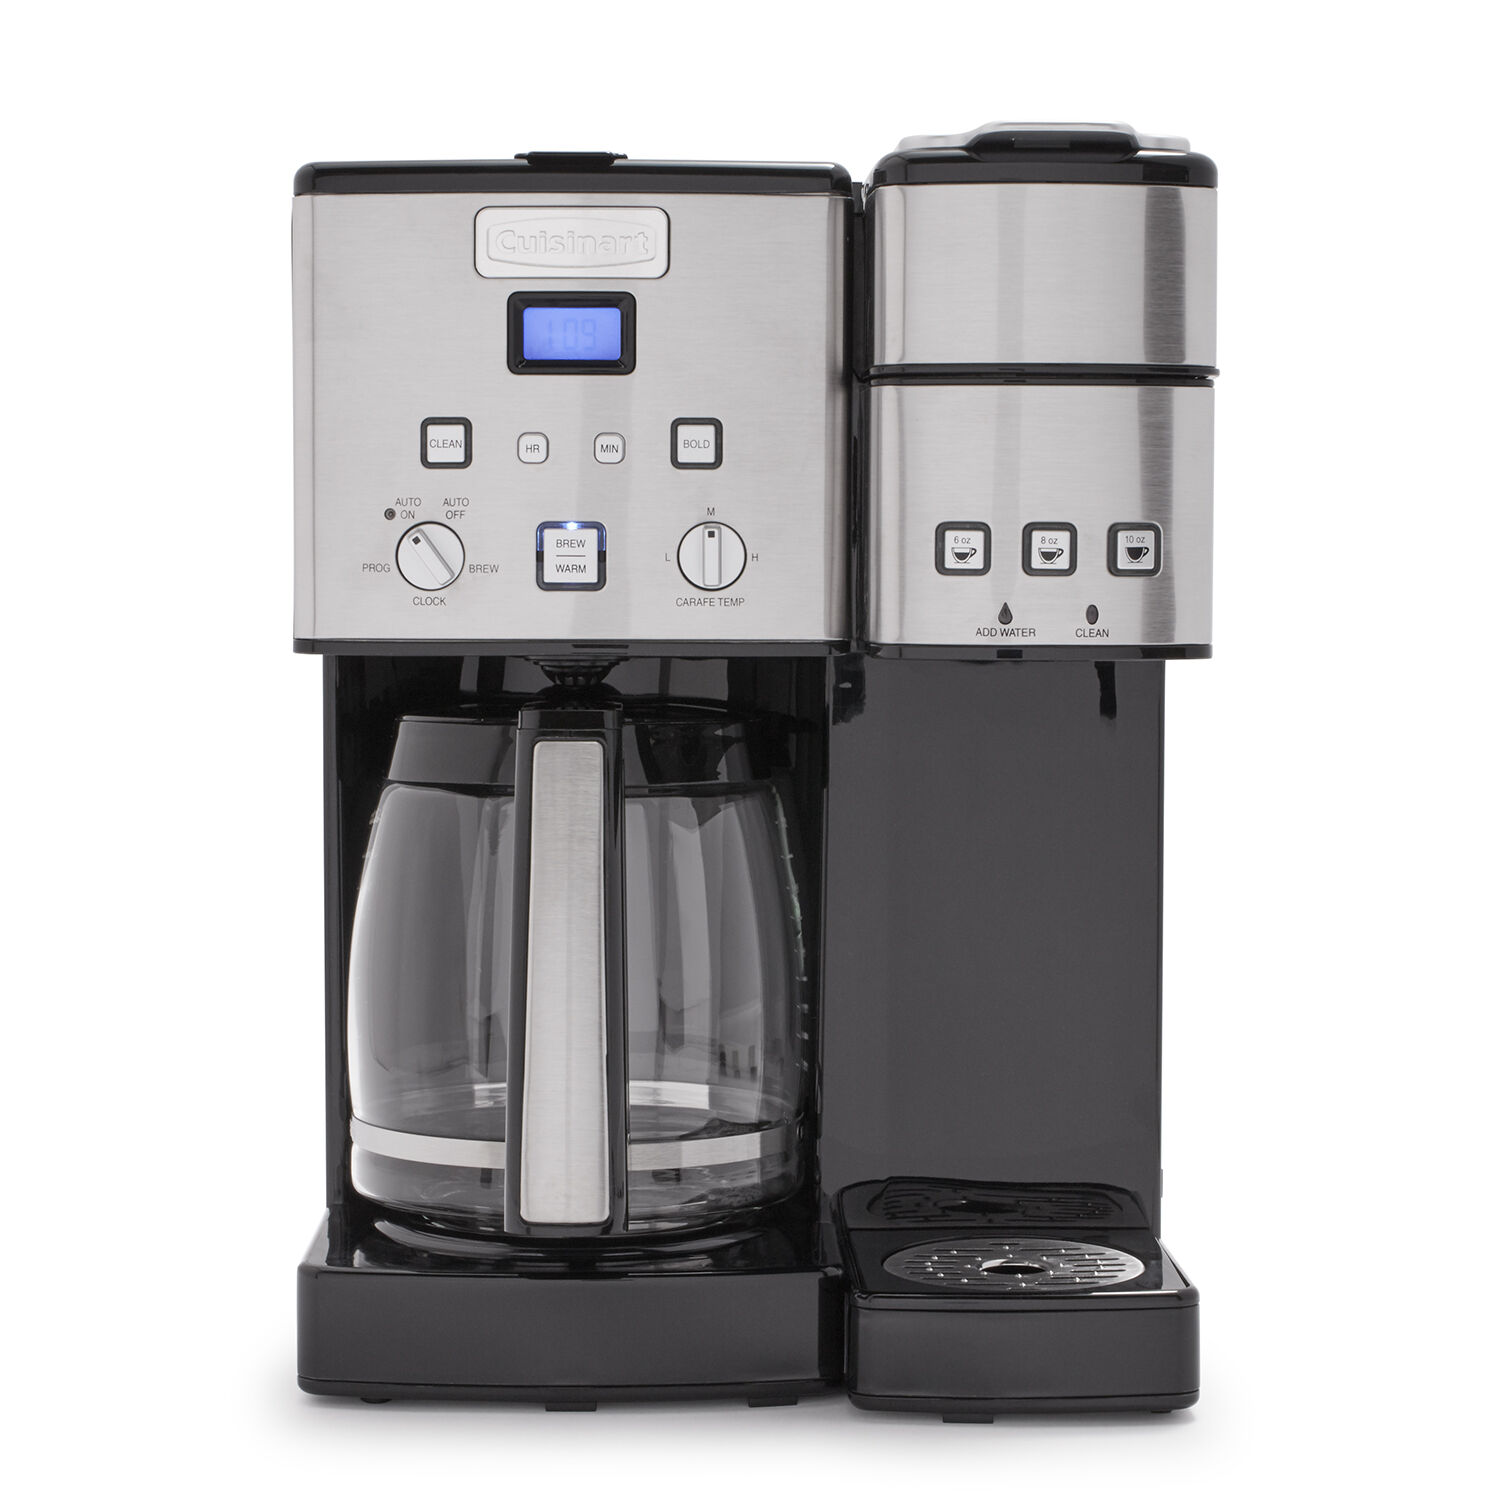 w Filter Programmable CUISINART 12 Cup Two Way COFFEE MAKER K-Cup, Grounds